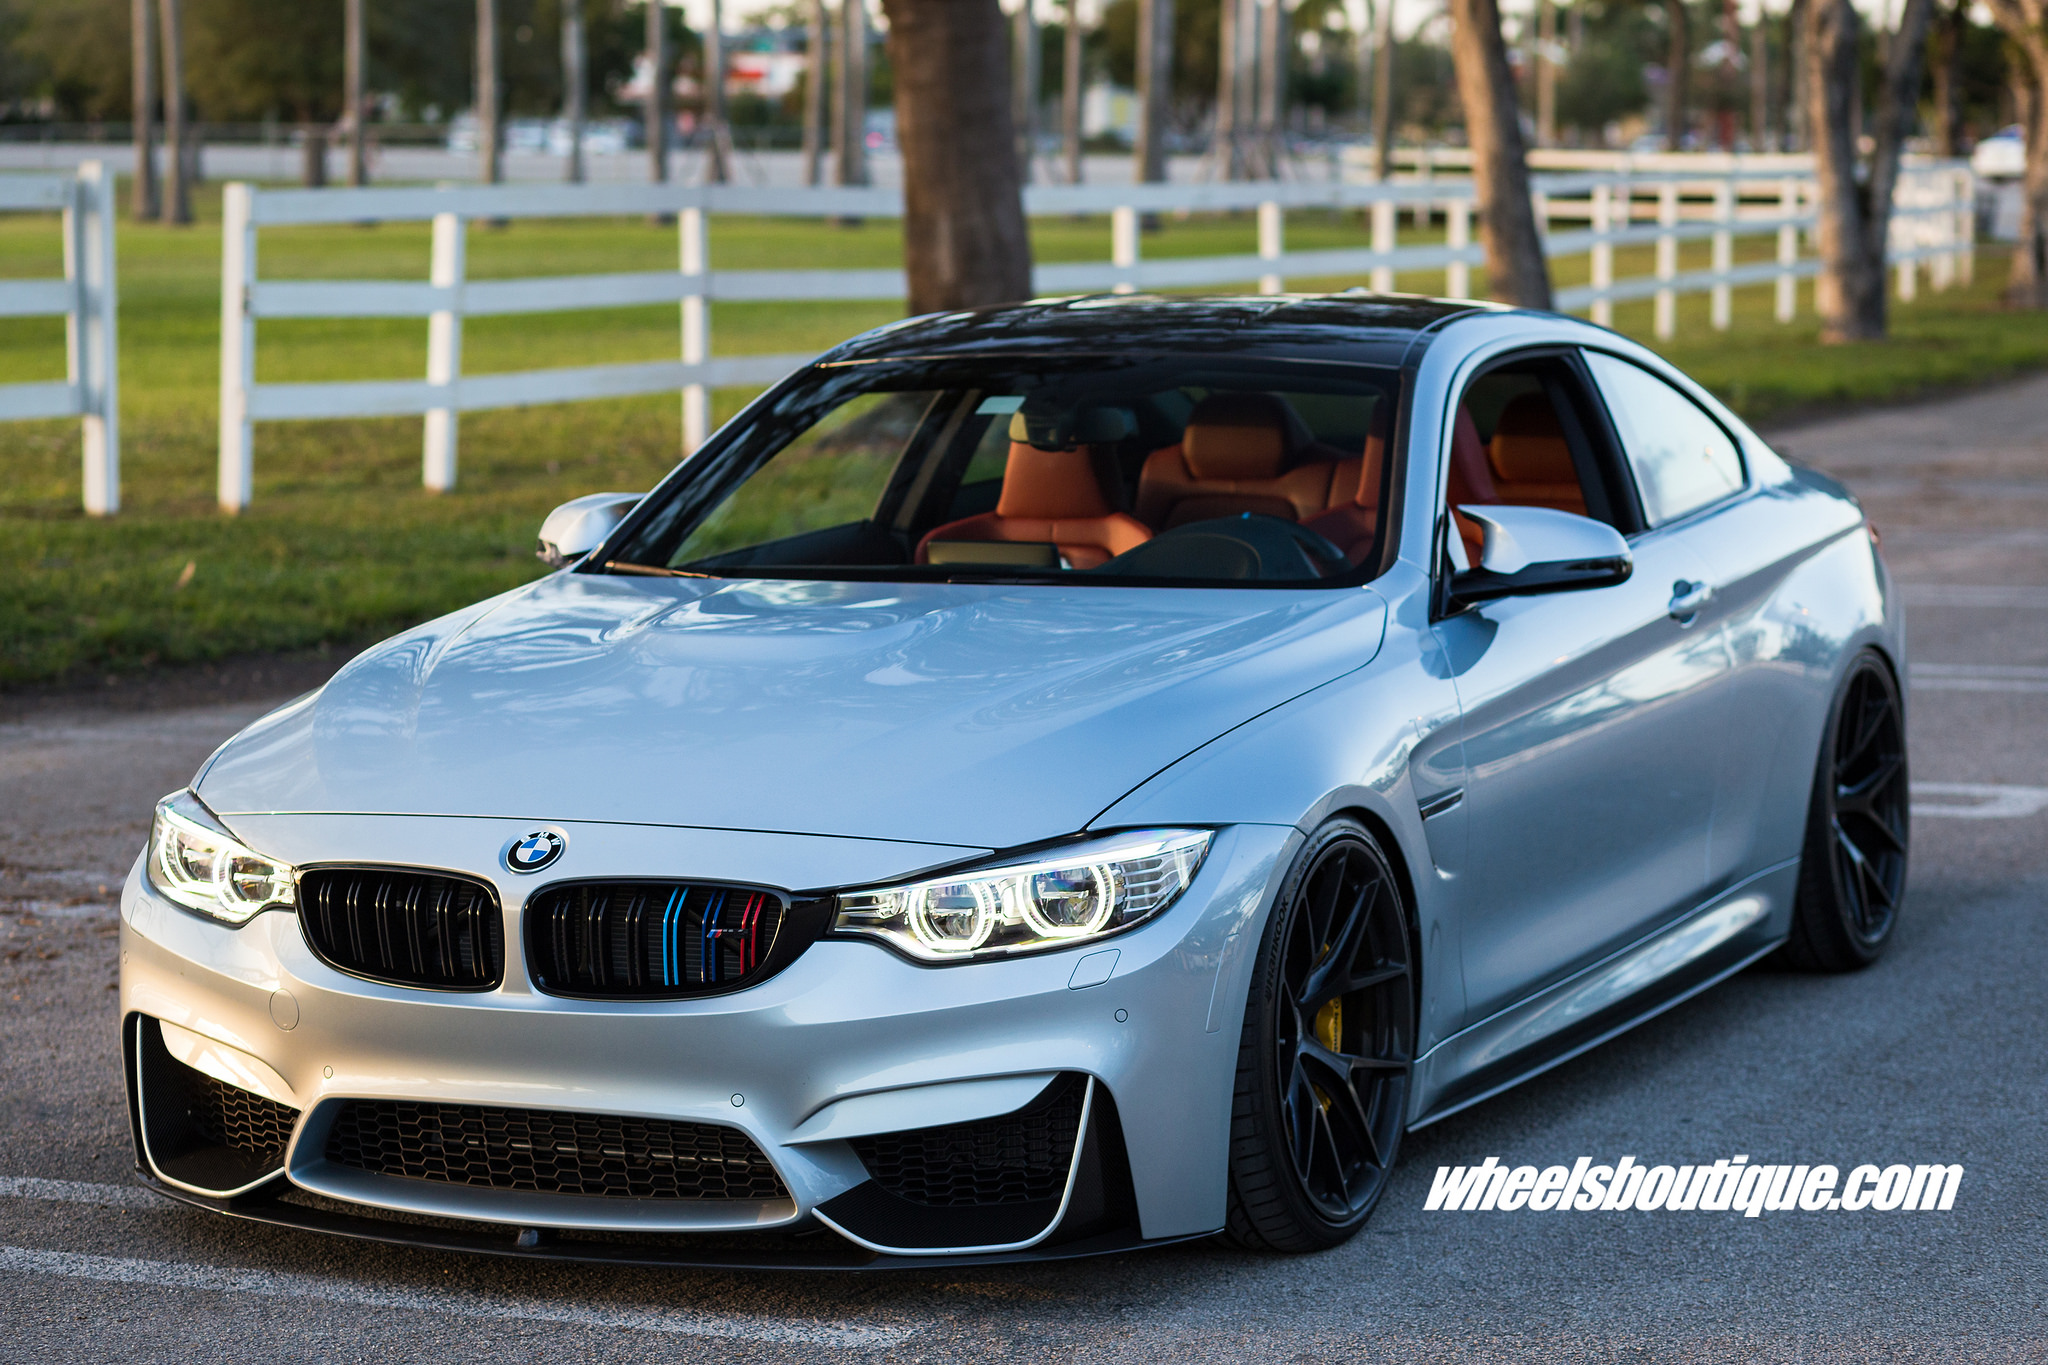 F82 BMW M4 on HRE Wheels (11)